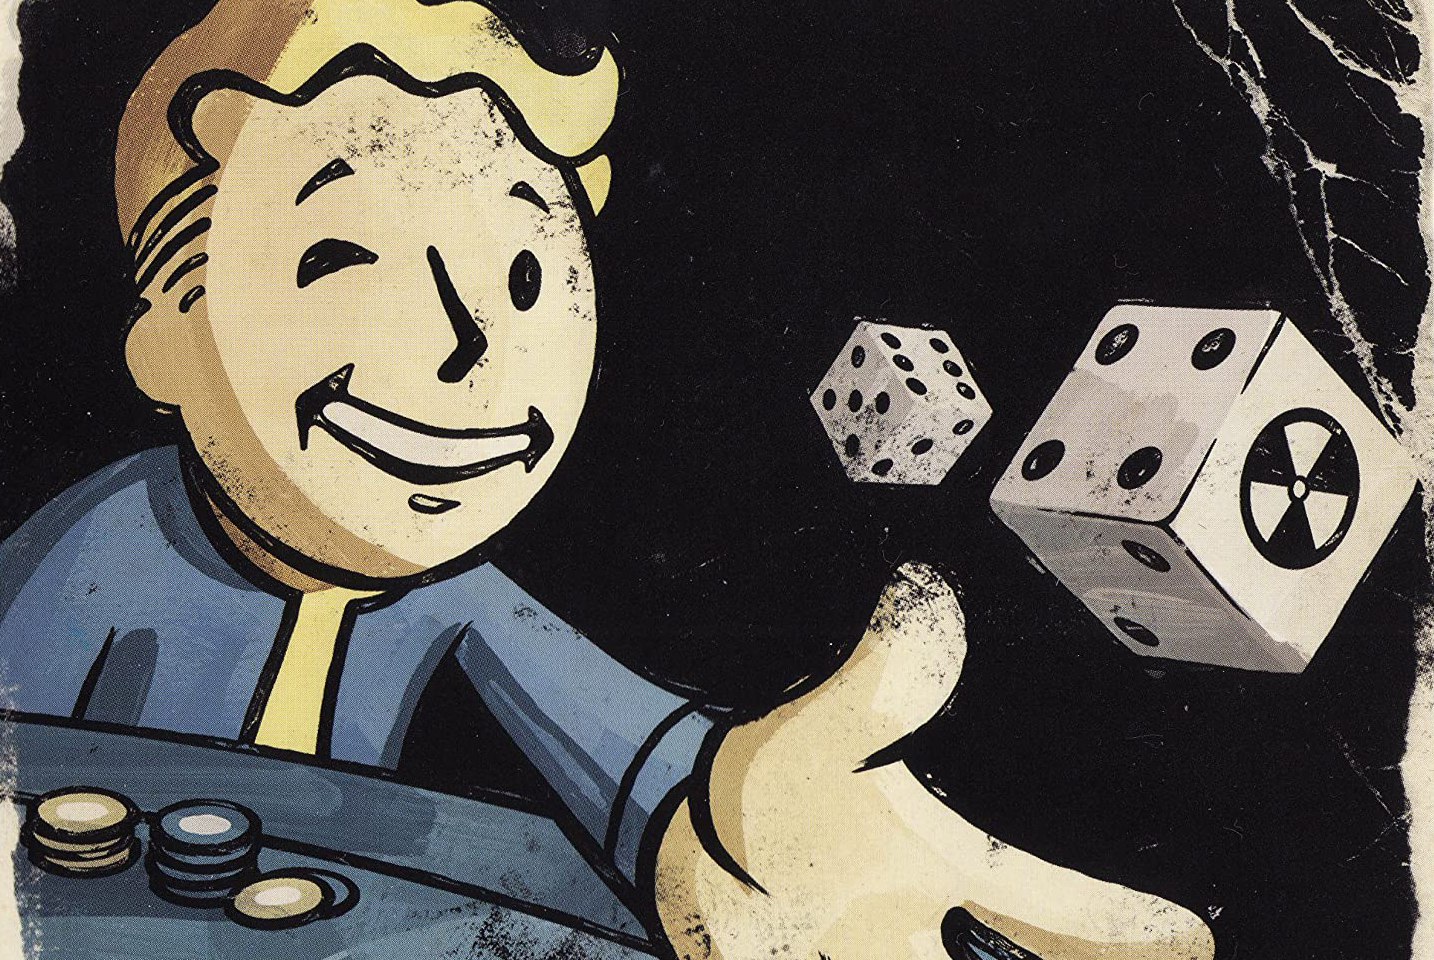 Cover art from the Making Of documentary for Fallout: New Vegas gets repurposed as clip art in Fallout: The Roleplaying Game.